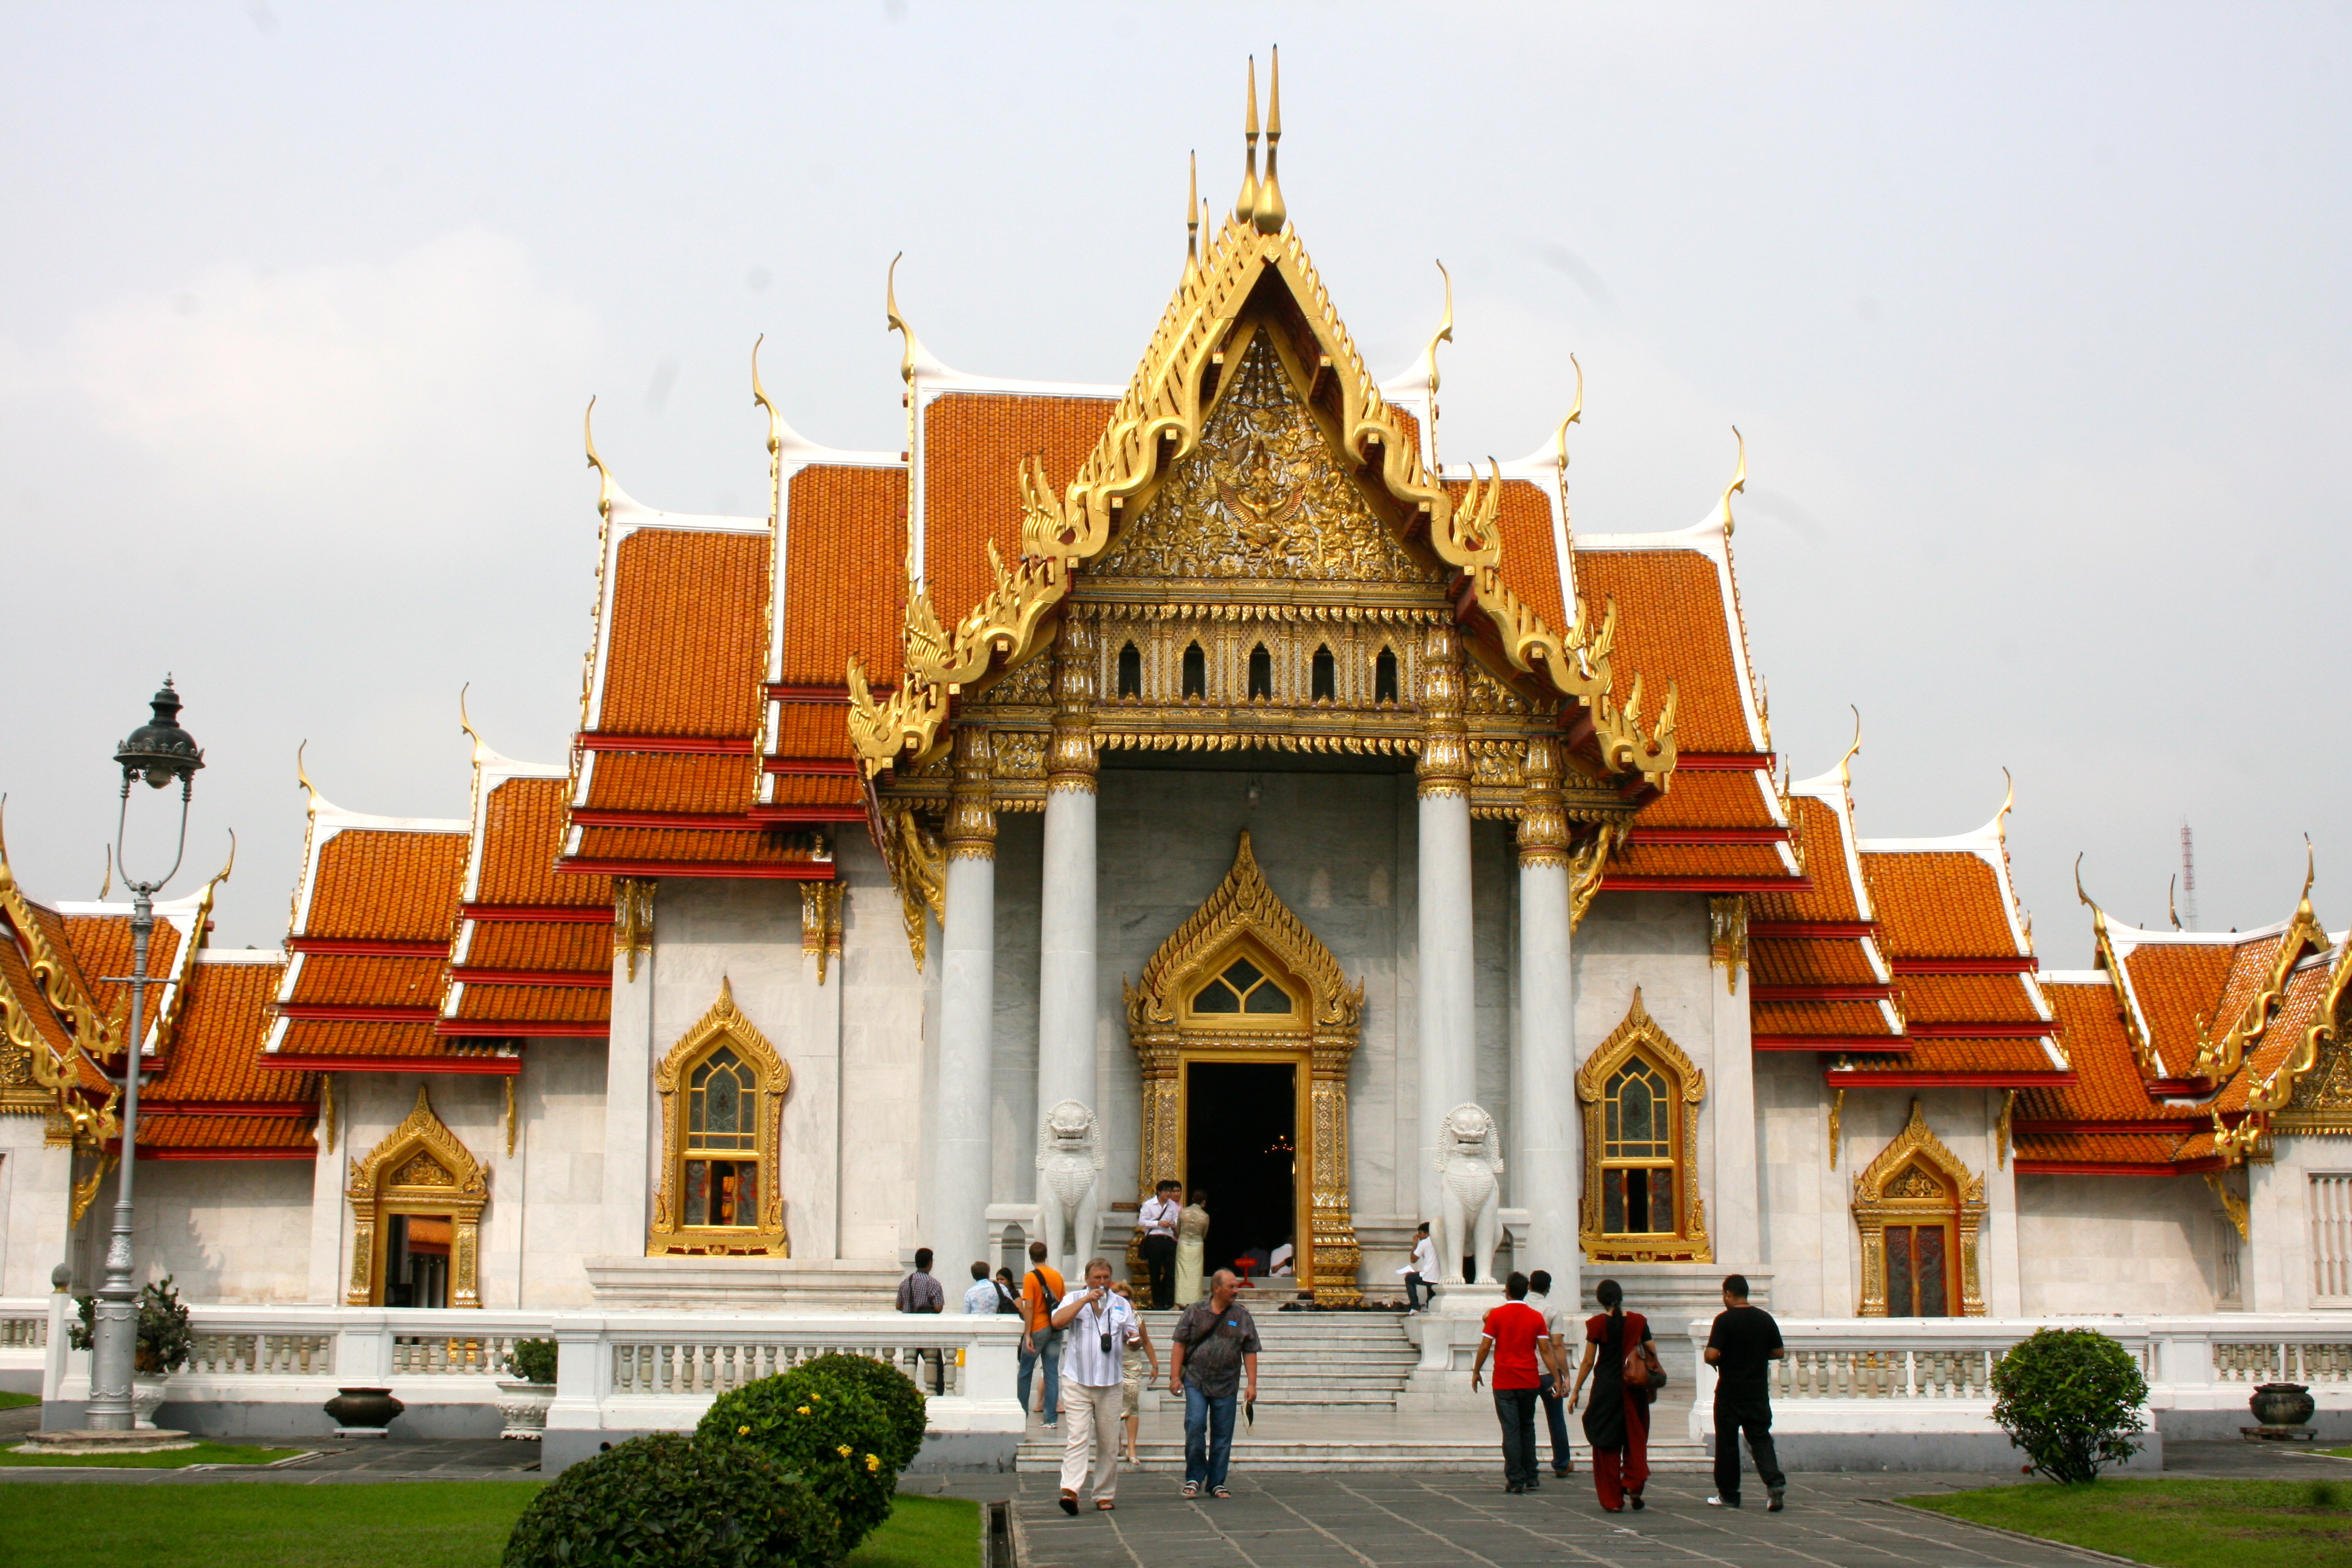 File:Wat Benchamabophit Temple, the marble temple (8281423949) (2).jpg - Wiki...